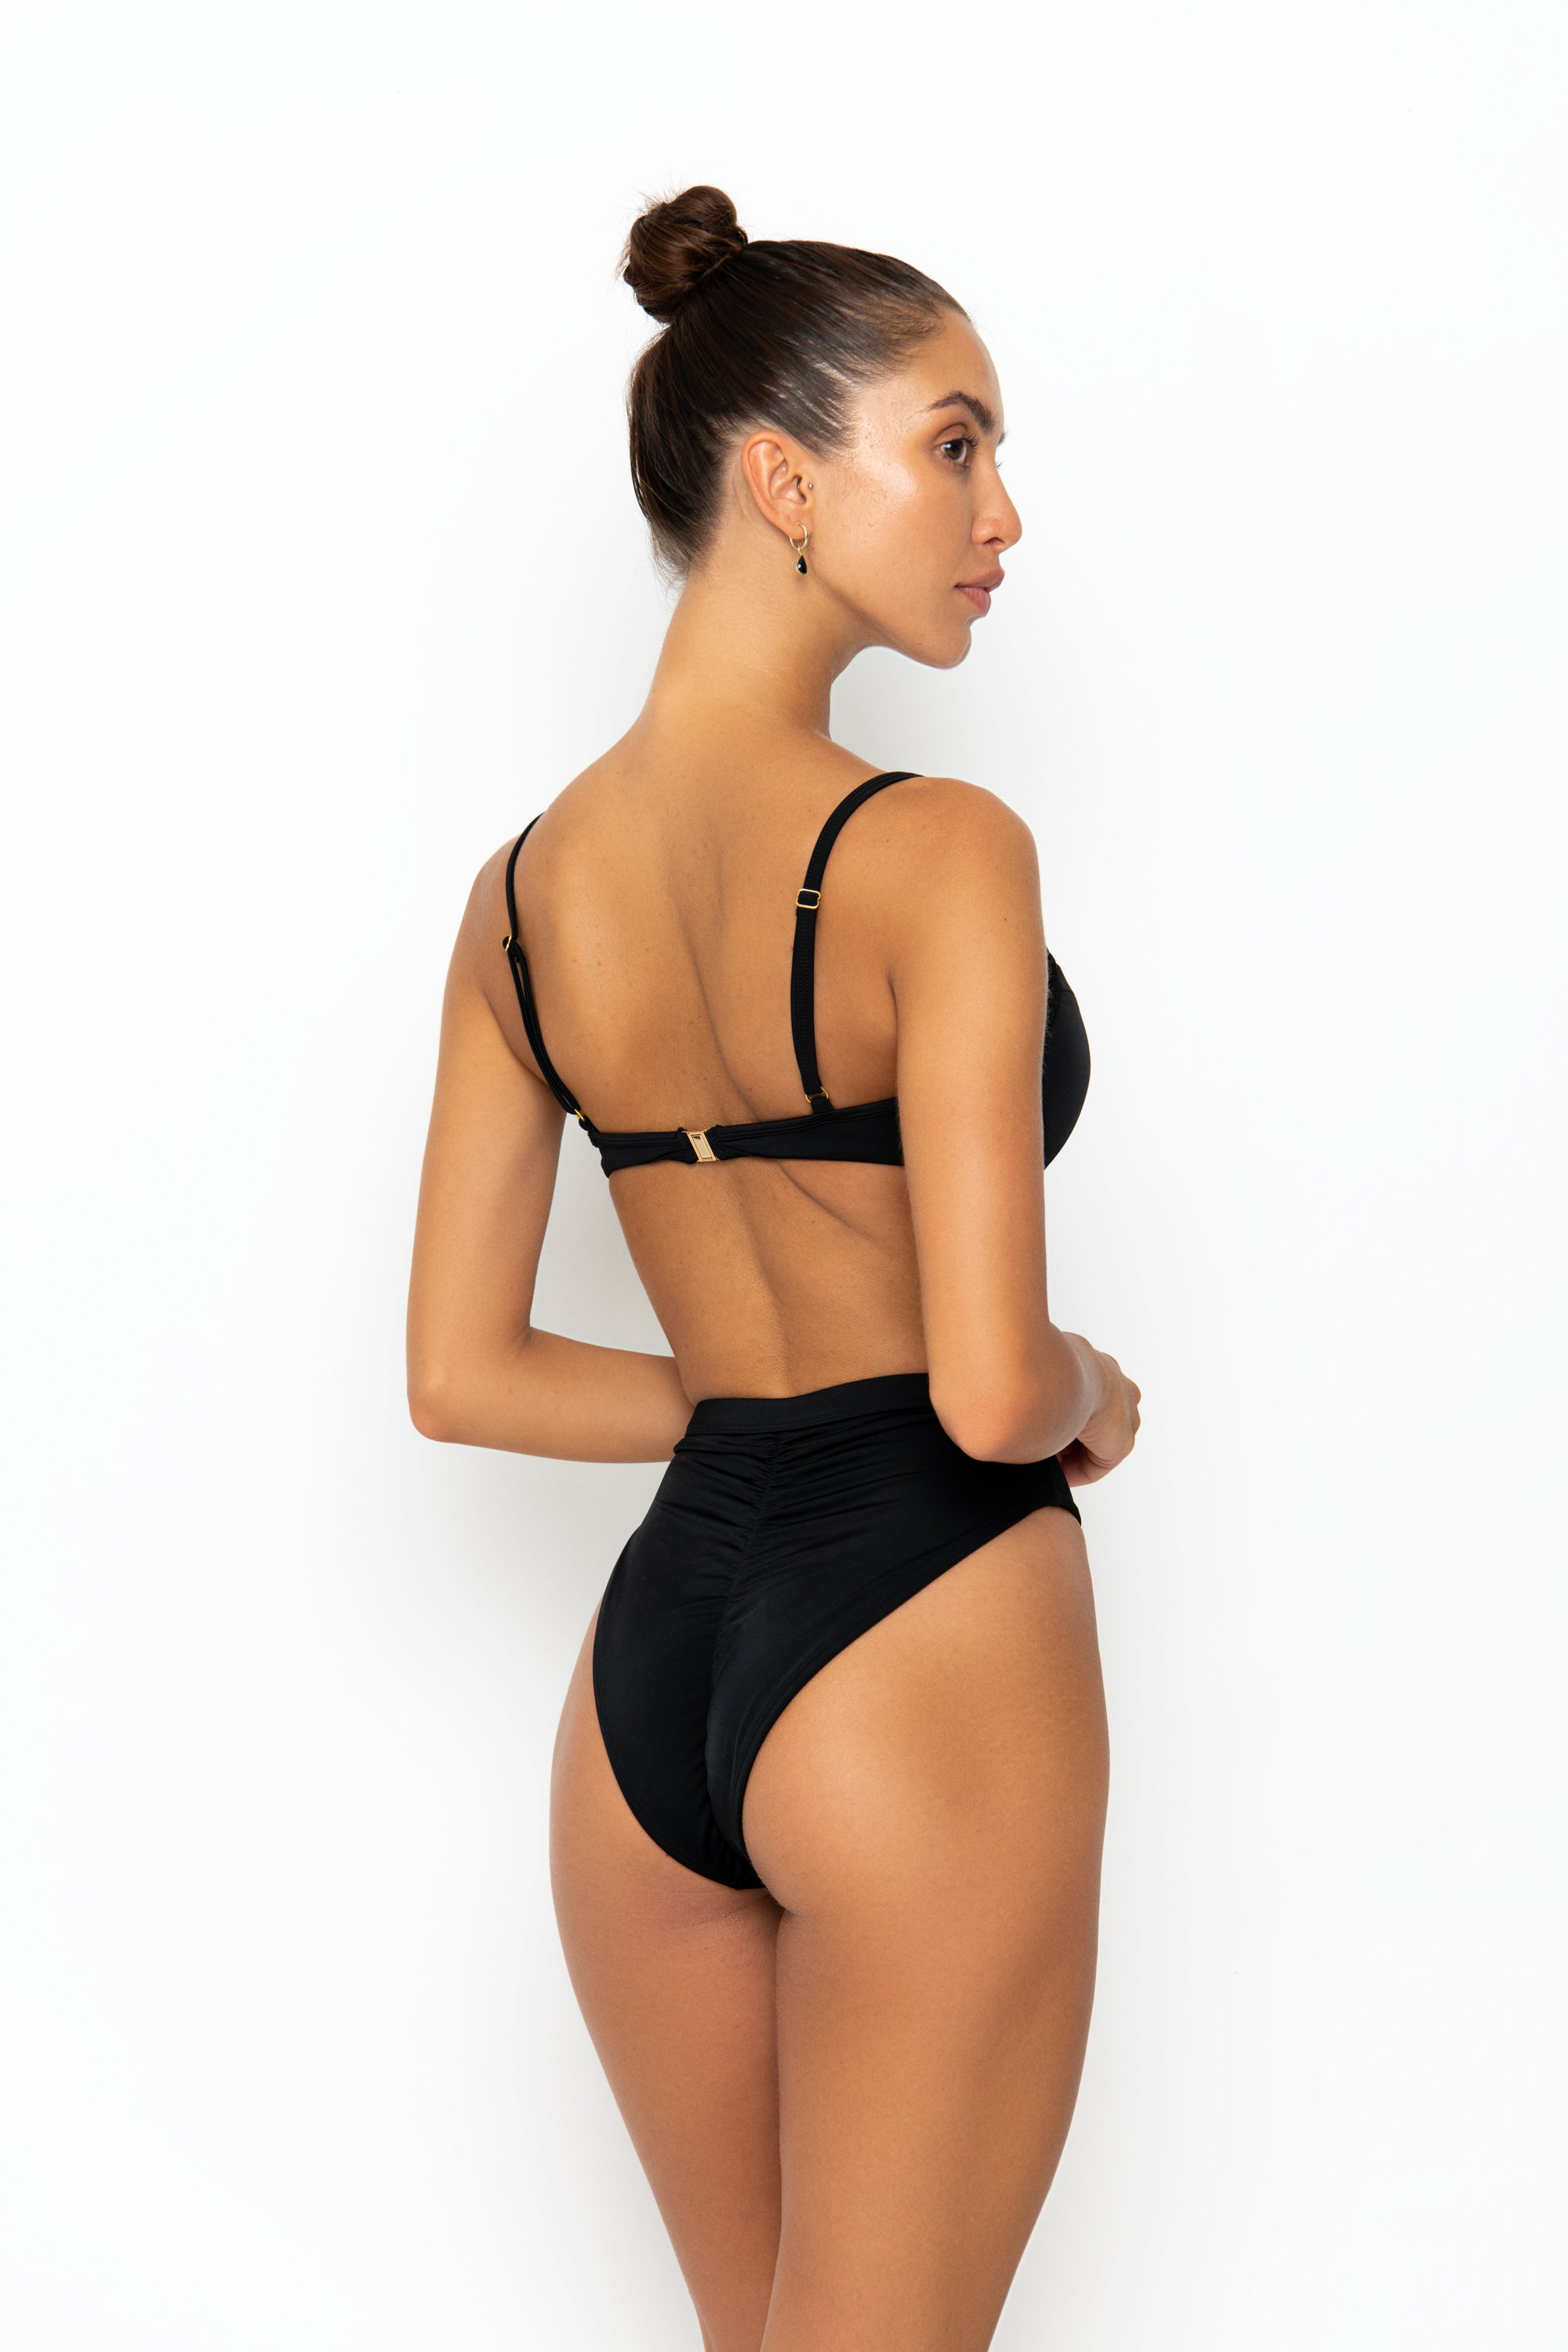 AKUA BOTTOM - BLACK MATTE